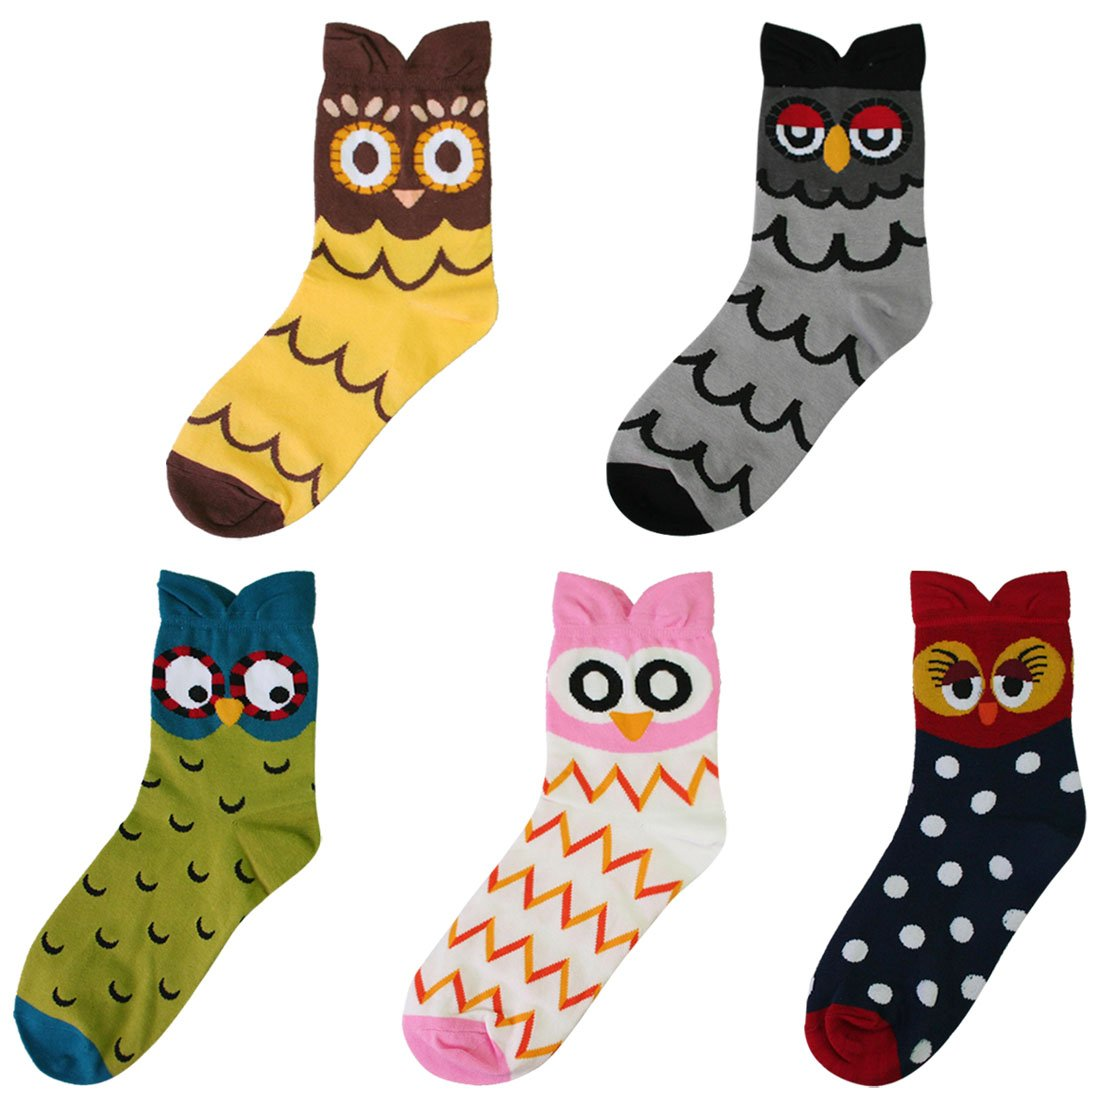 kilofly Novelty Crew Socks Value Pack [Set of 5 Pairs] - Lovely Owl FTW350set5